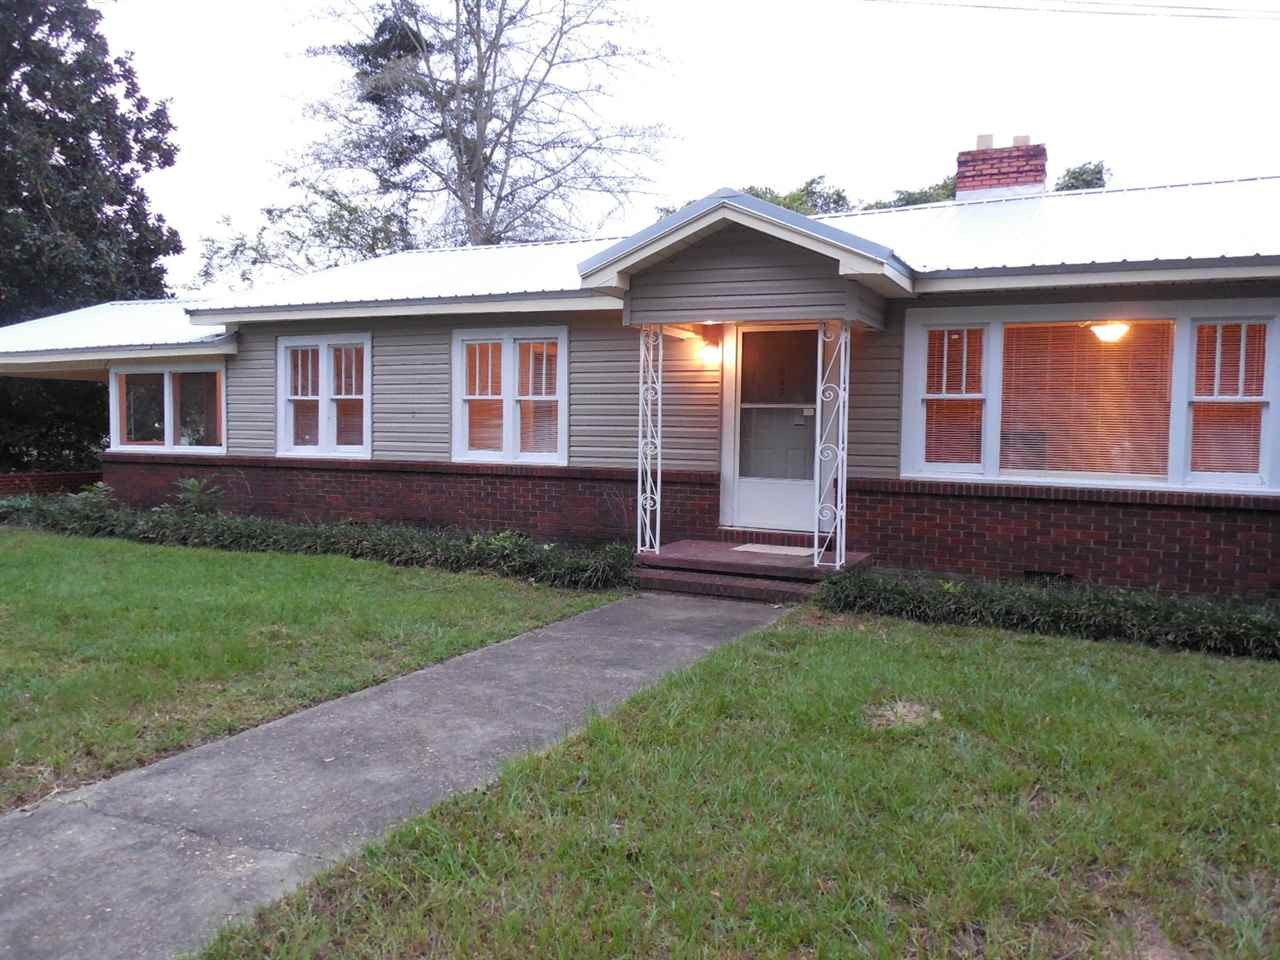 507 N RAWLS, ENTERPRISE, AL, 36330 Photo 1